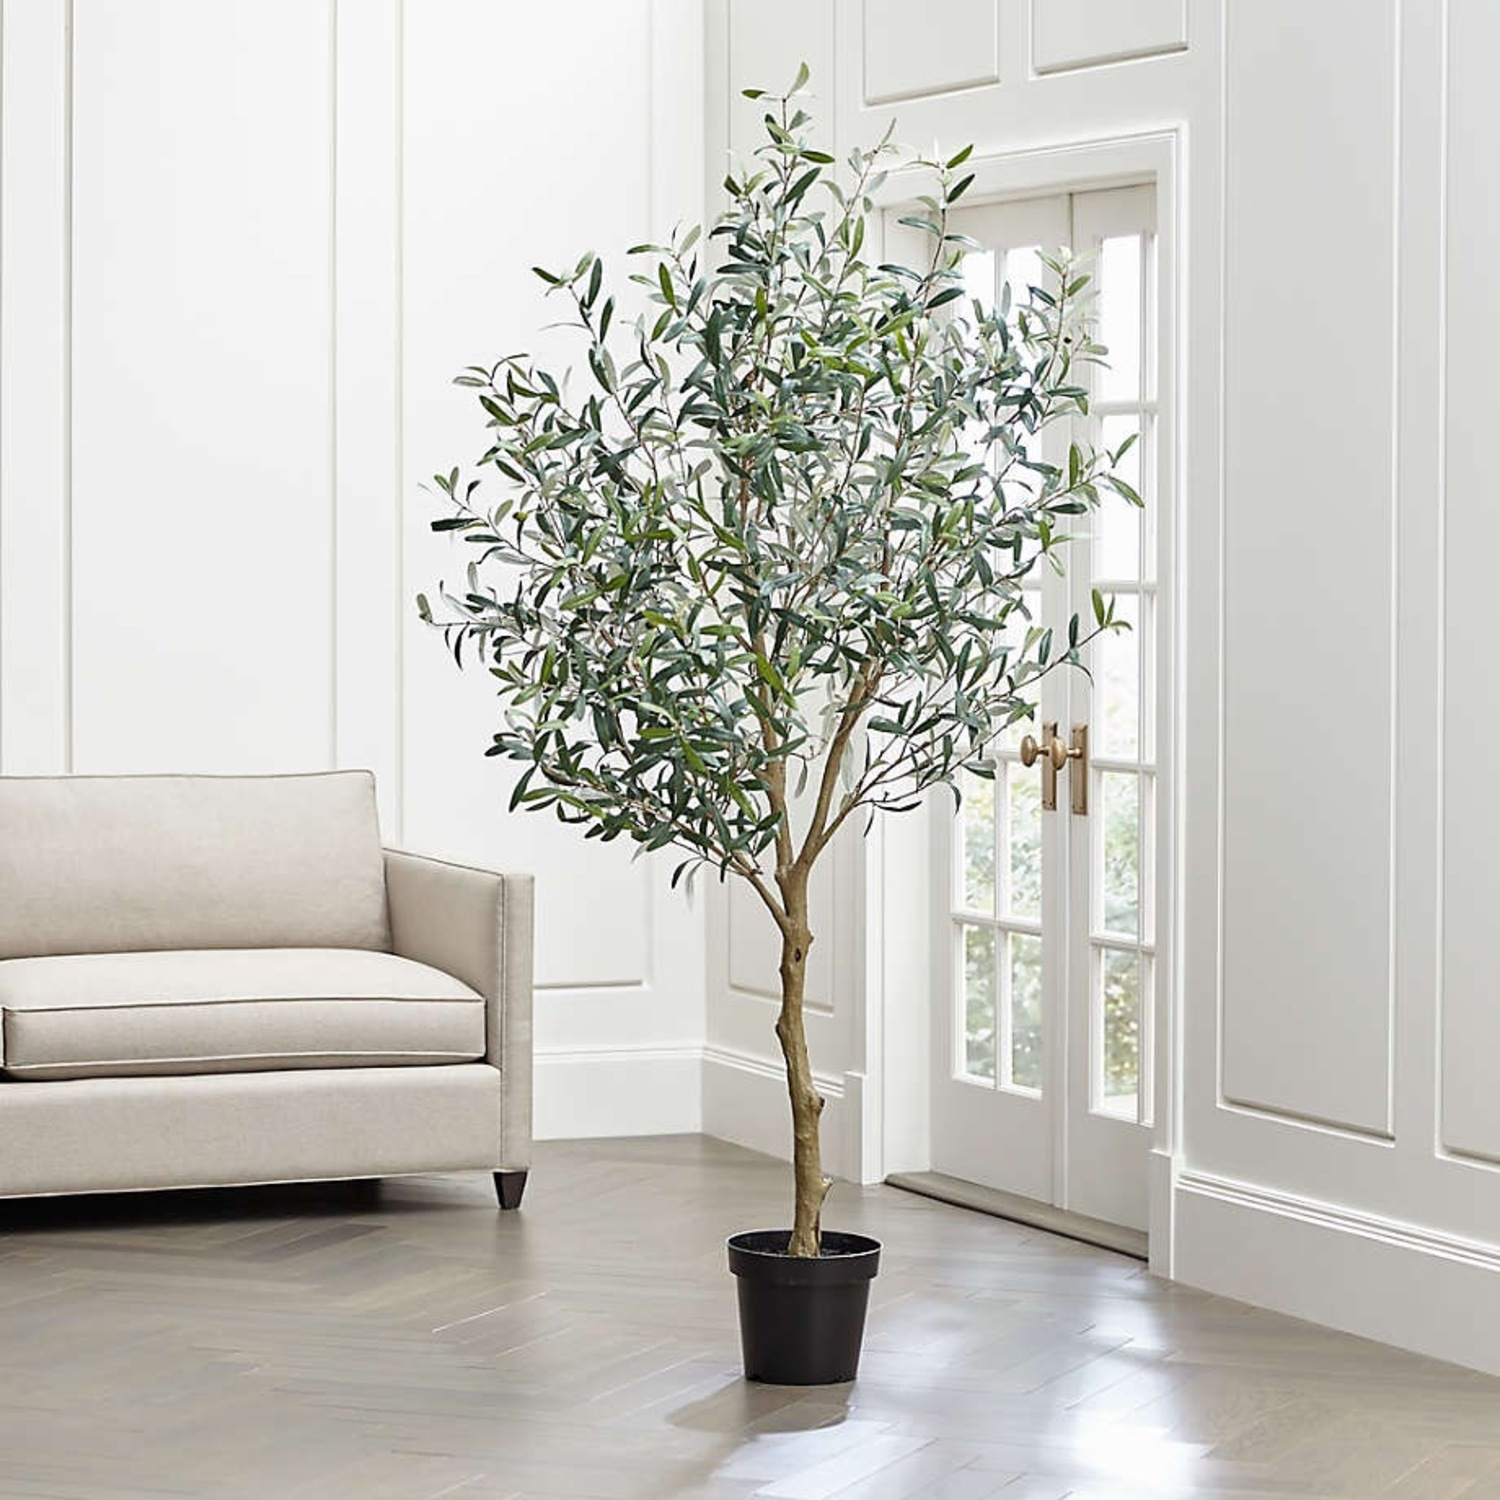 Crate & Barrel 7 Foot Faux Olive Tree - image-3